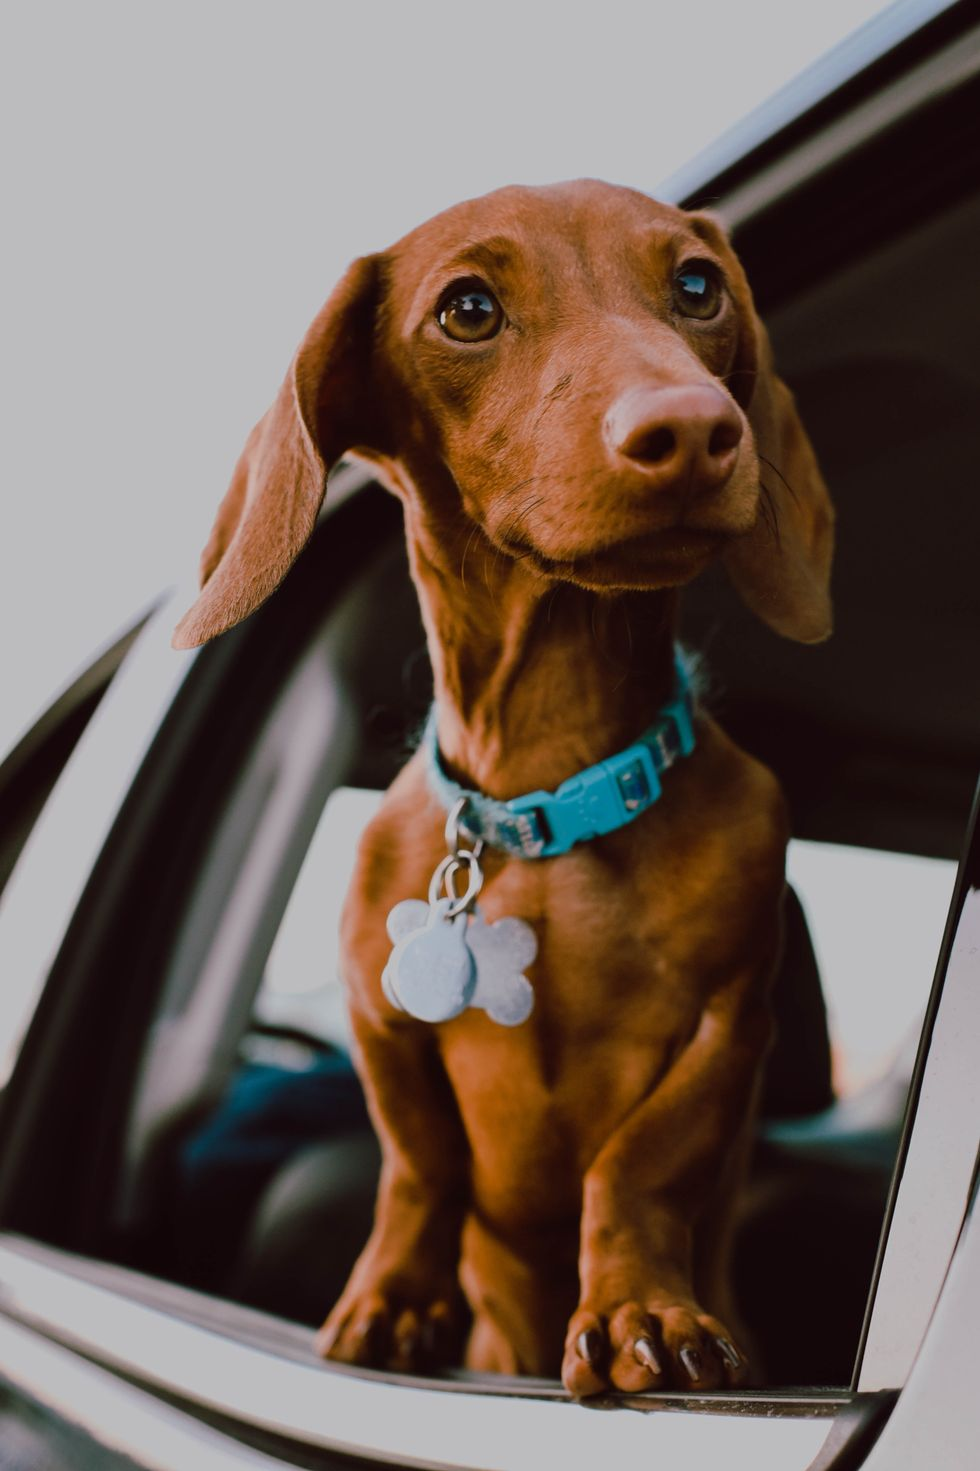 5 Reasons Why Everyone Should Love Dachshunds